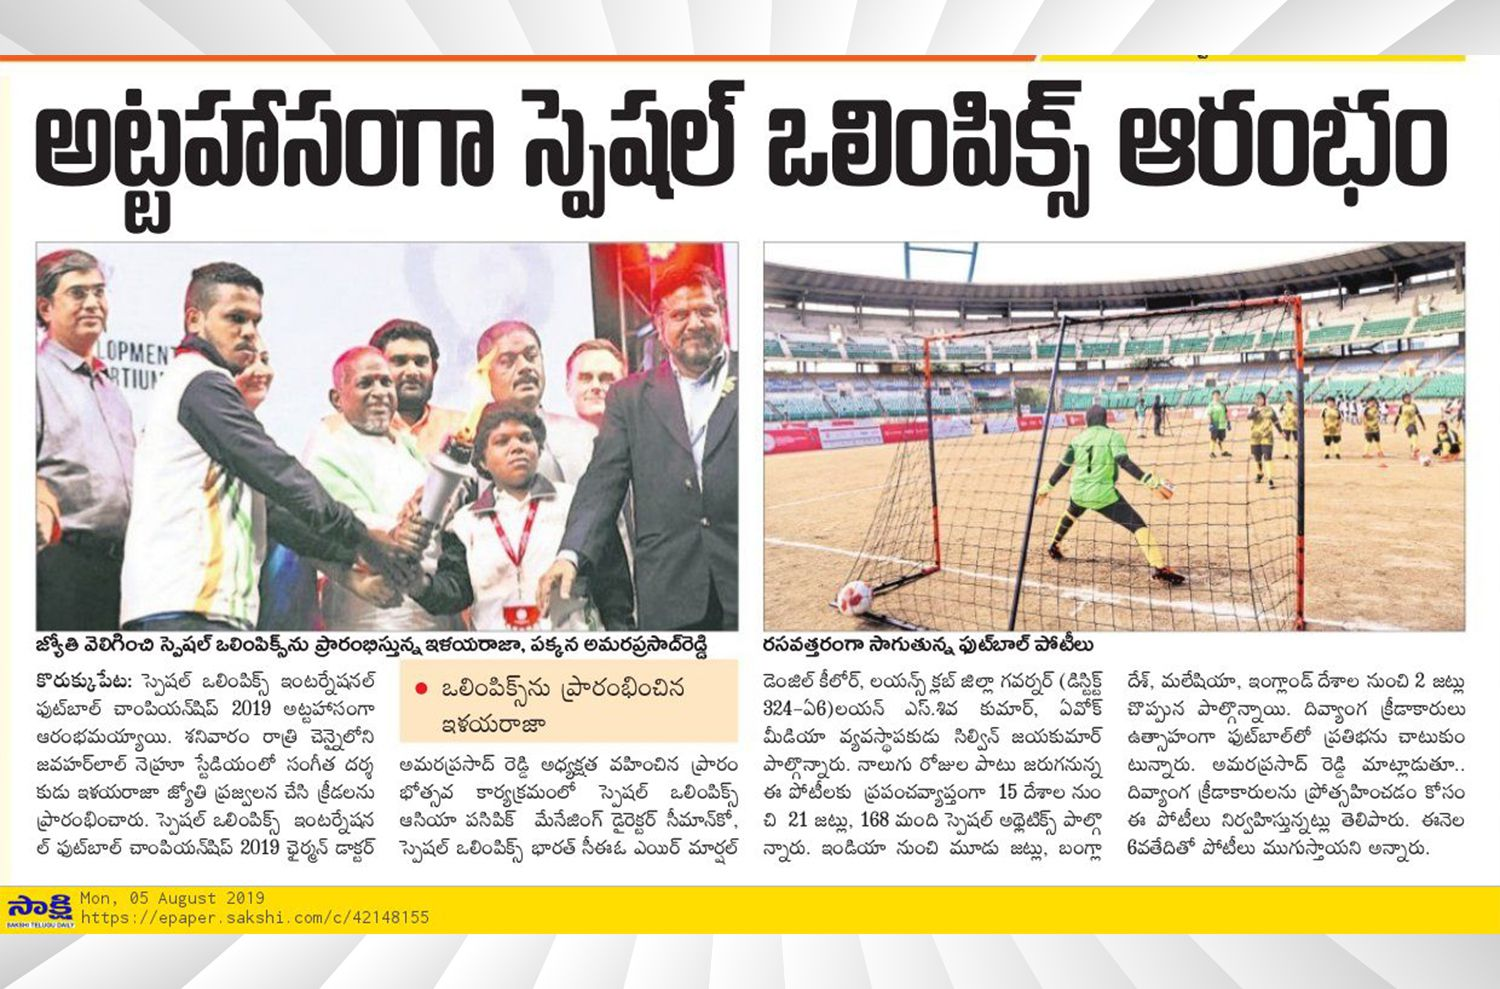 Special Olympics Sakshi August